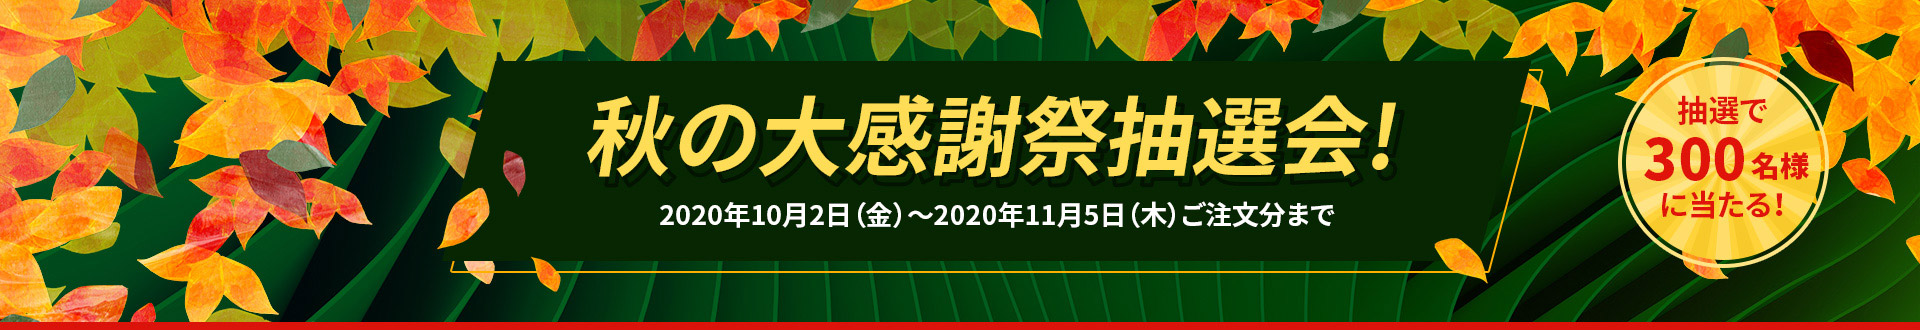 2020-autumn-sale-page-v1/Top-banner